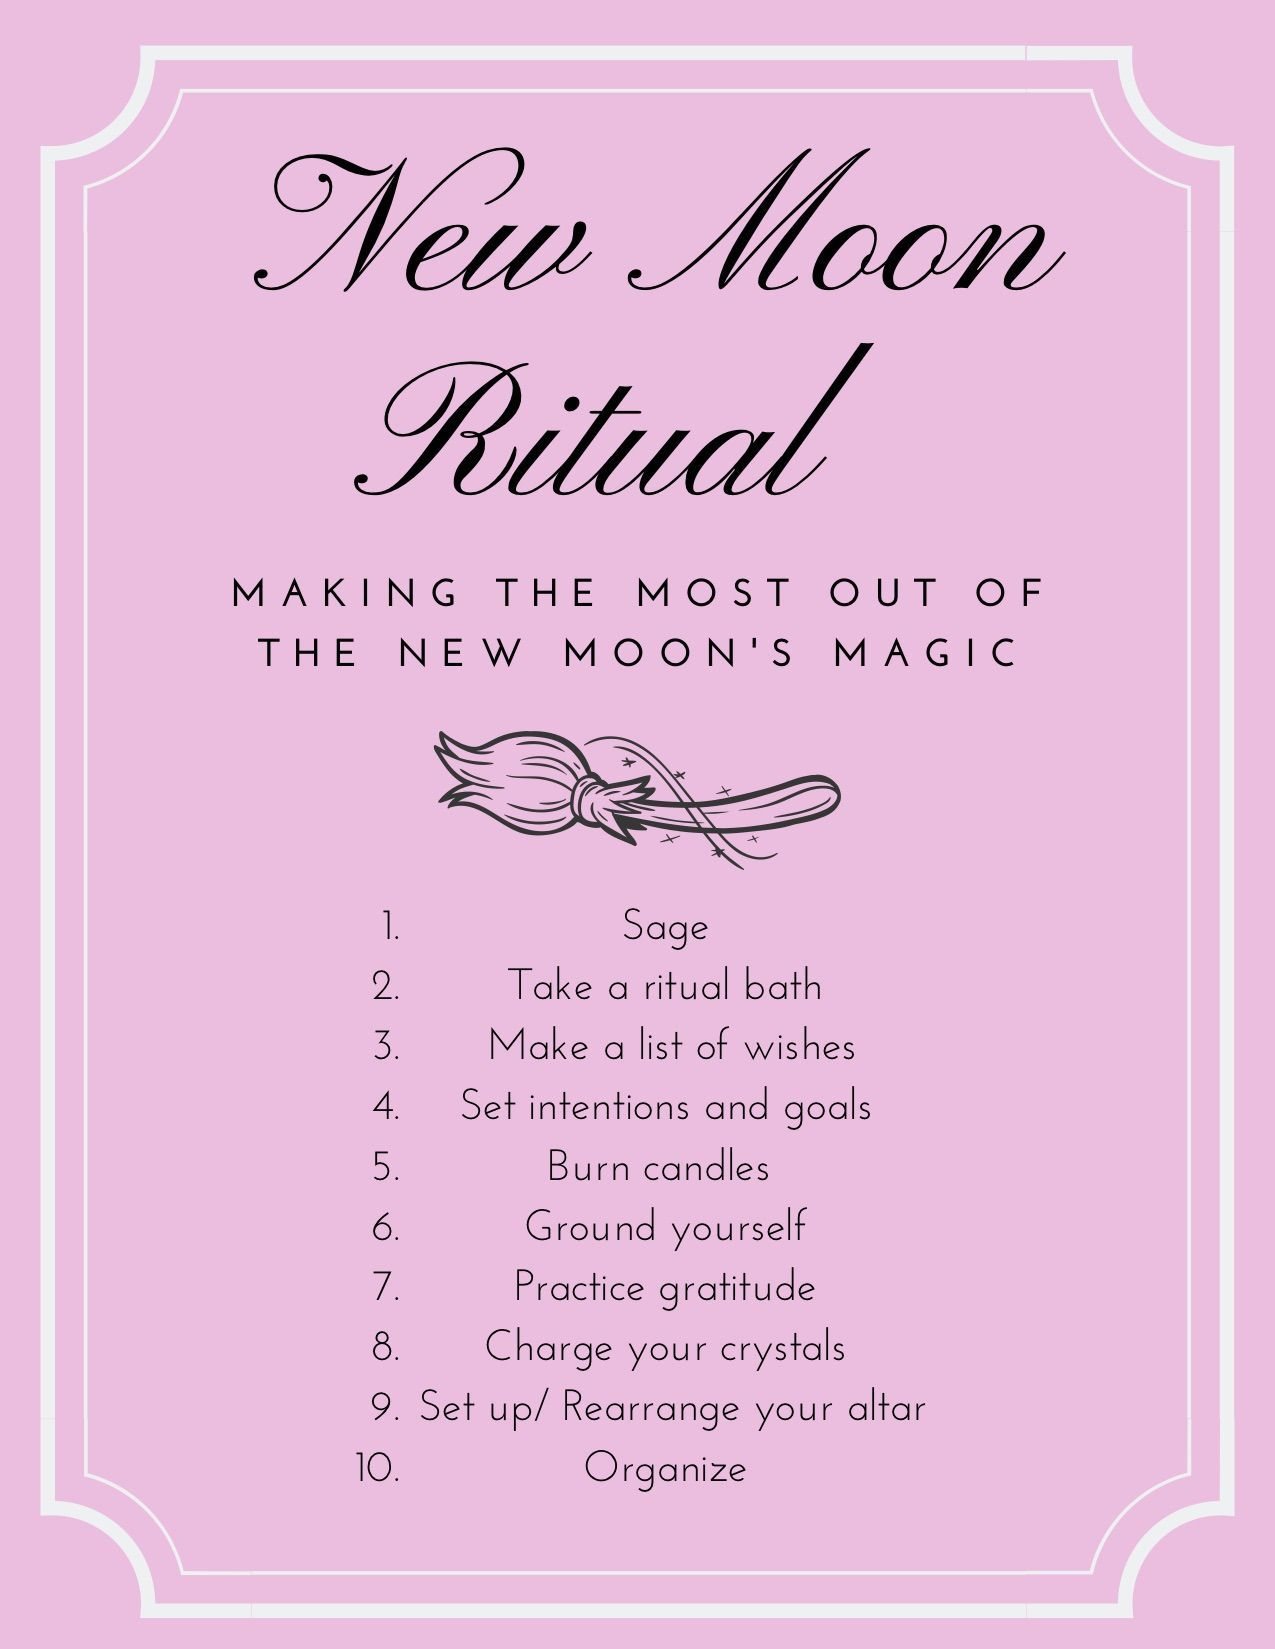 New Moon Ritual #newmoonritual How to do a New Moon Ritual #newmoonritual